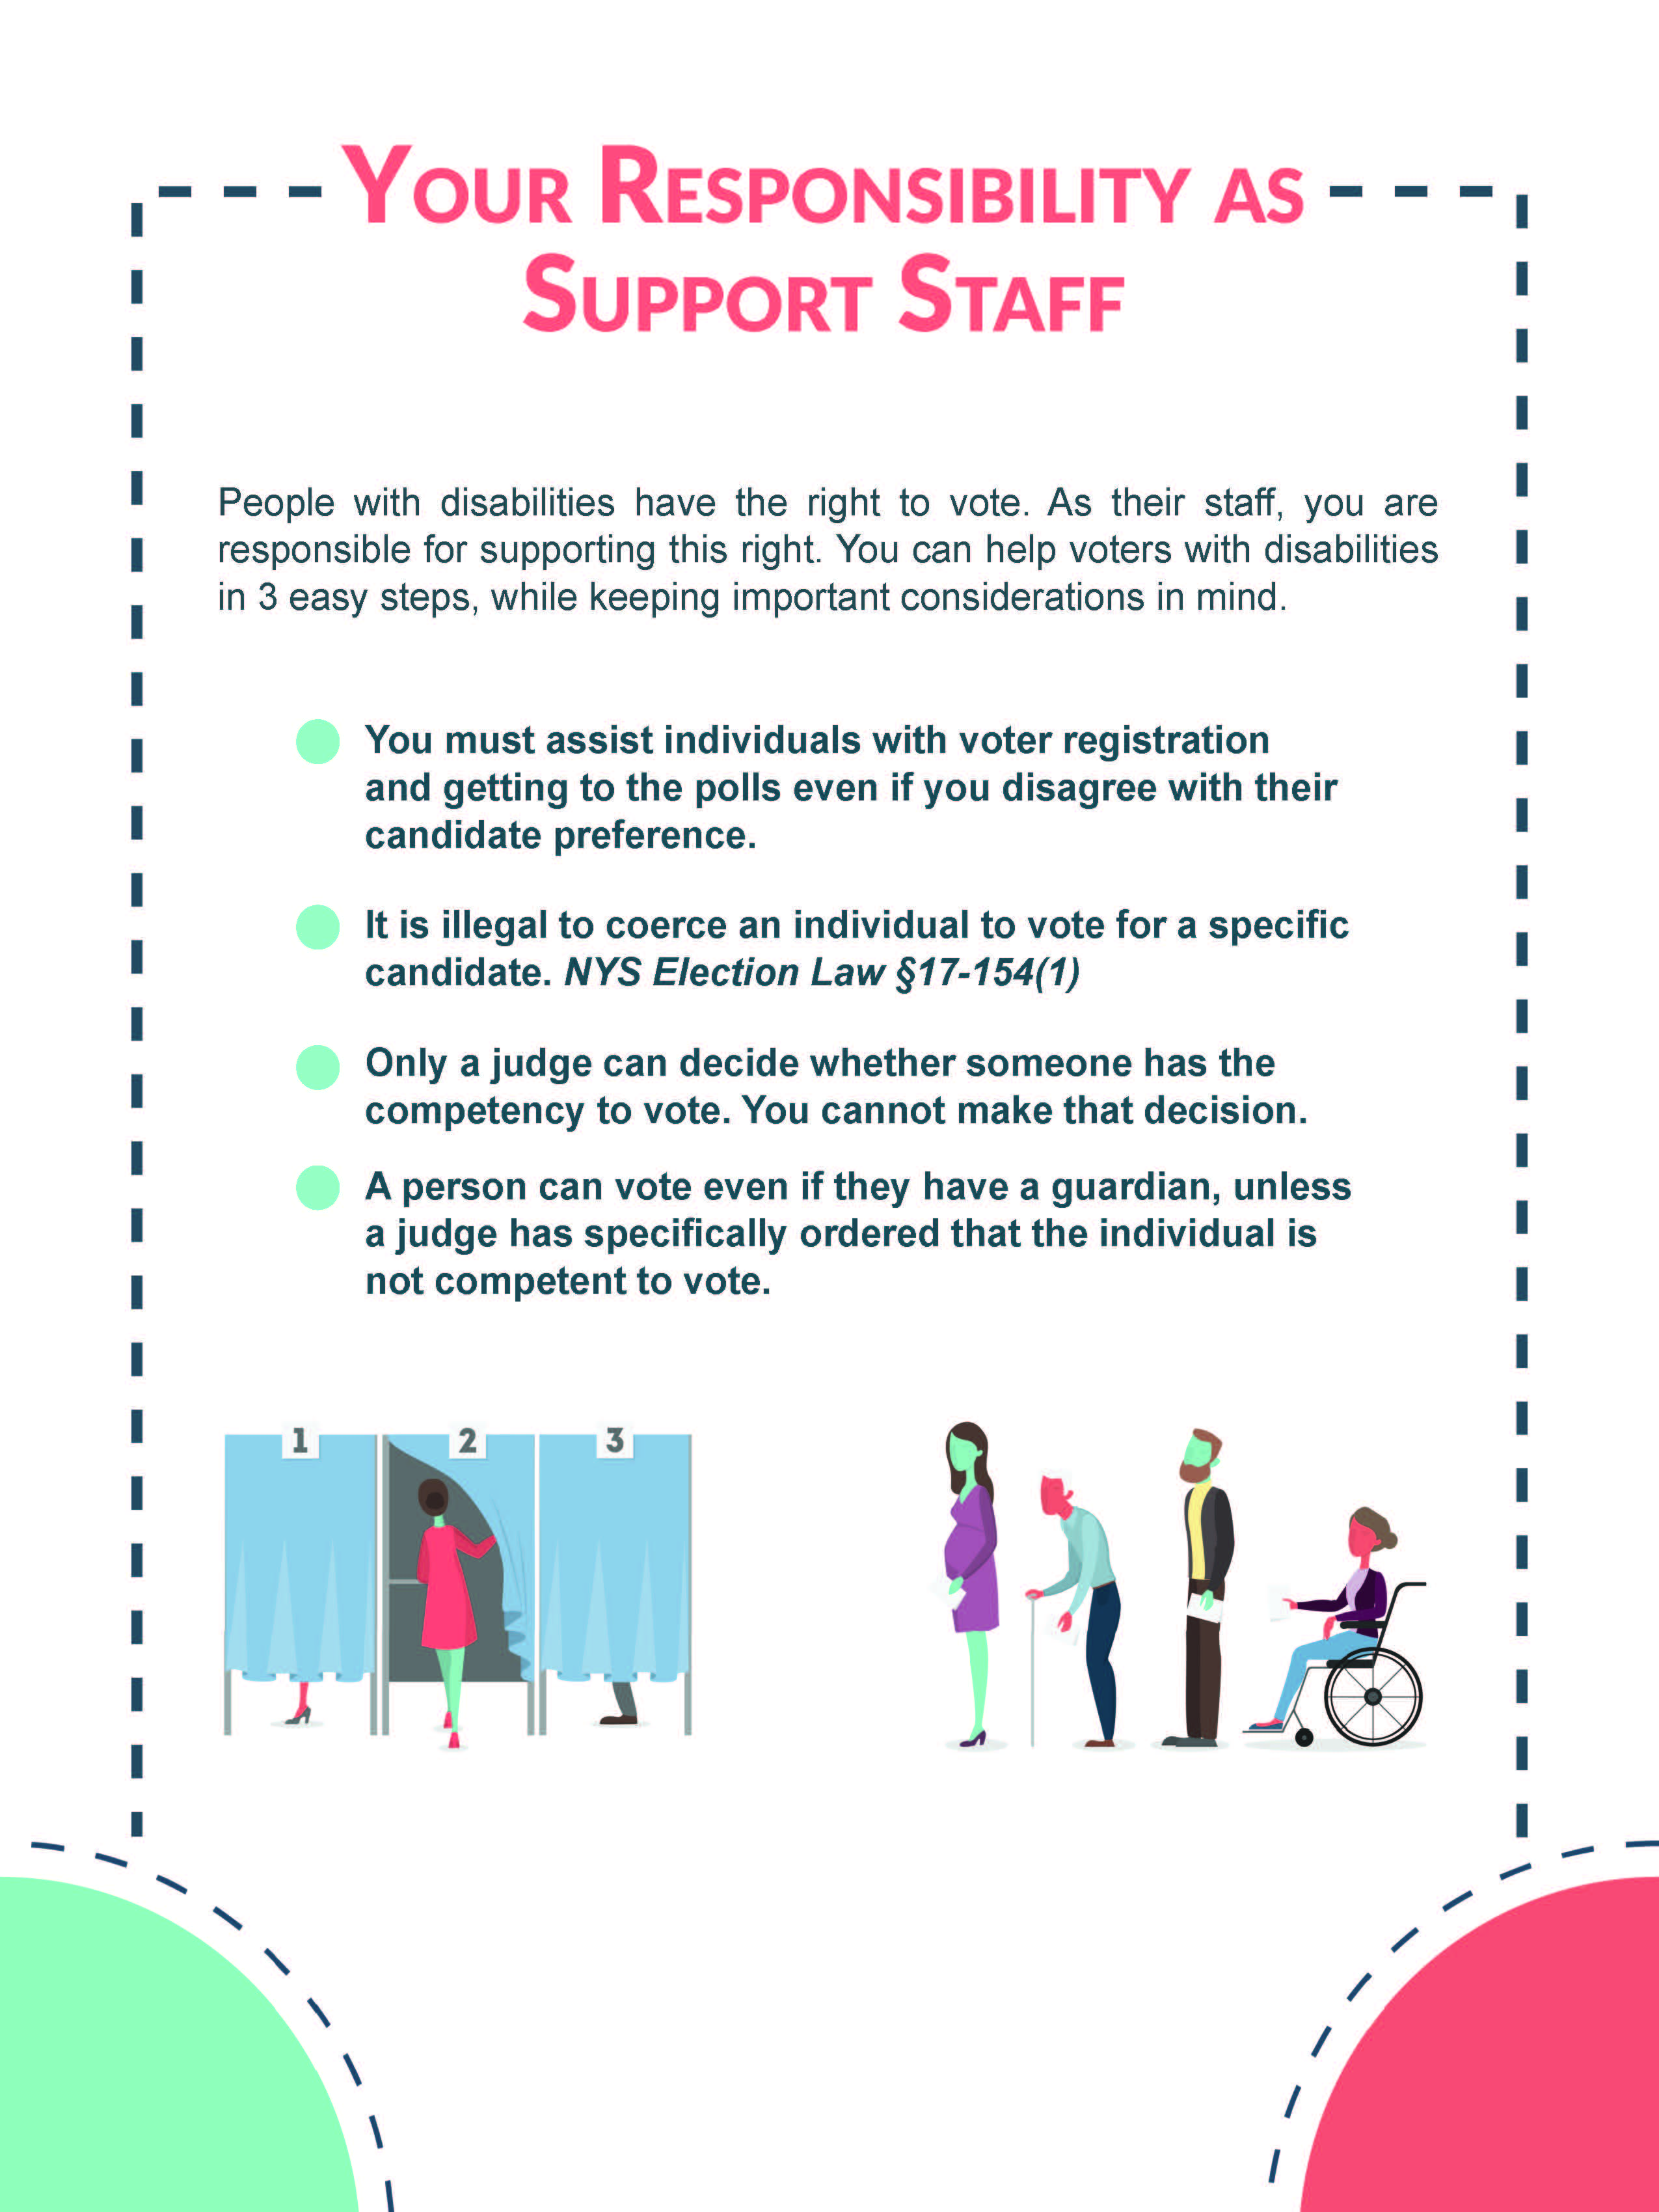 Your responsibility as support staff